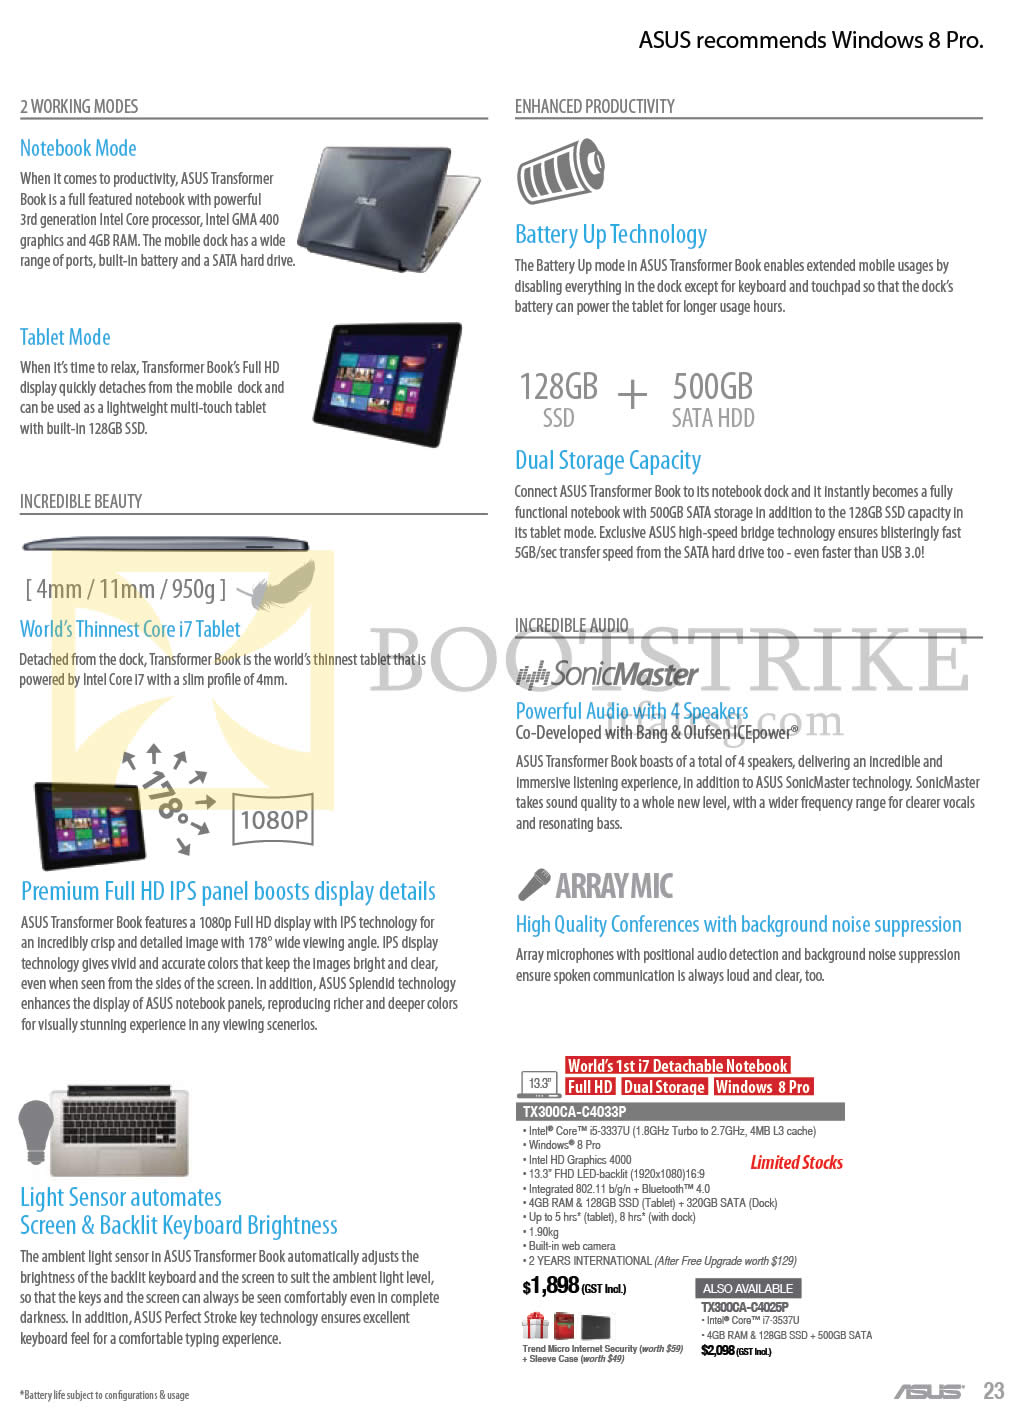 COMEX 2013 price list image brochure of ASUS Notebooks Transformer Book Features Working Modes, Beauty, Audio, Productivity, TX300CA-C4033P, TX300CA-C4025P